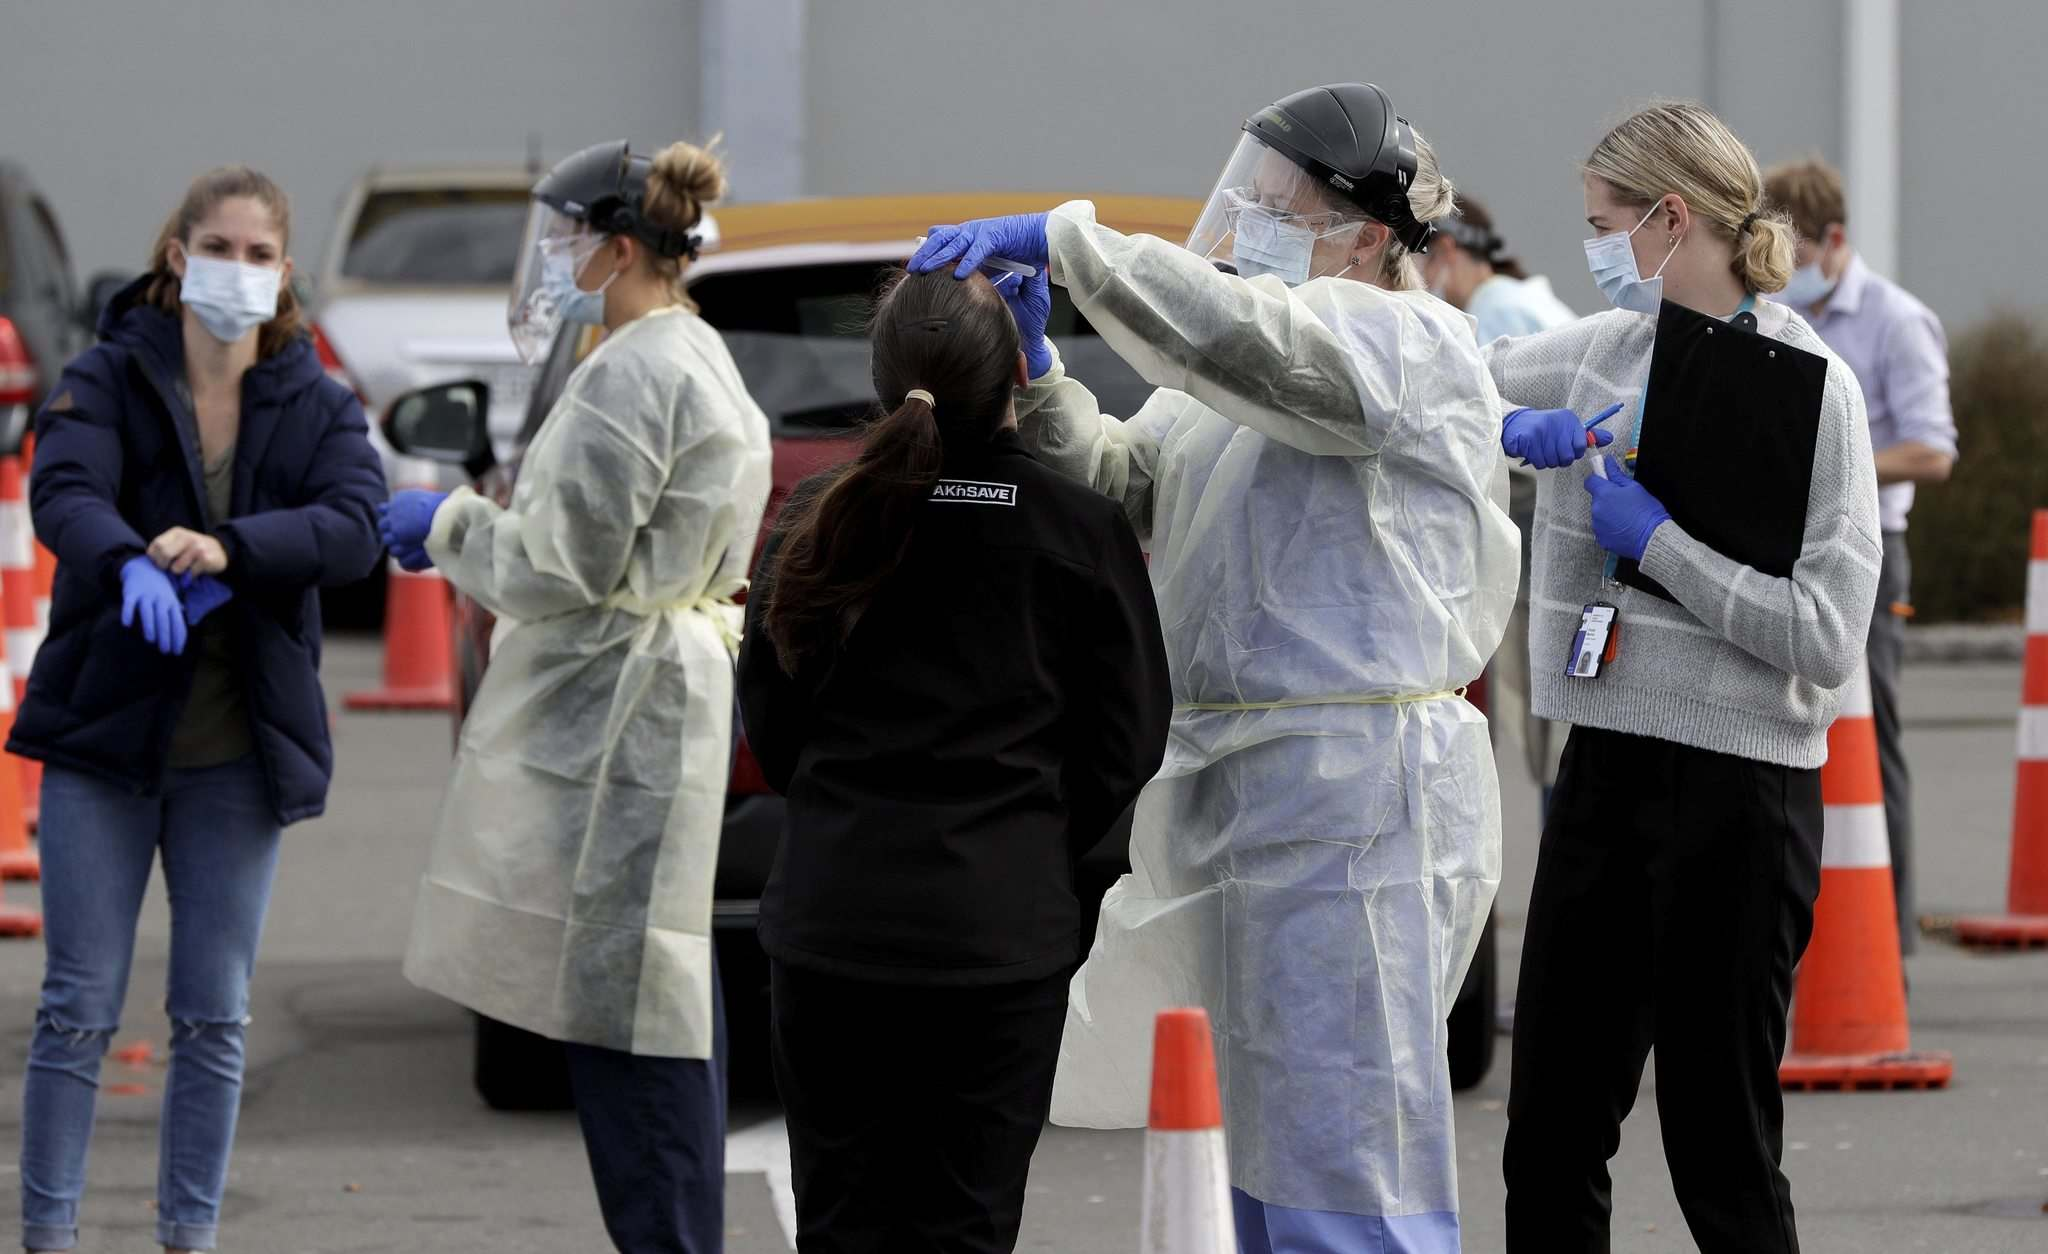 In April 2020, medical staff tested shoppers who volunteered at a pop-up community COVID-19 testing station at a supermarket carpark in Christchurch, New Zealand. (Mark Baker / The Associated Press files)